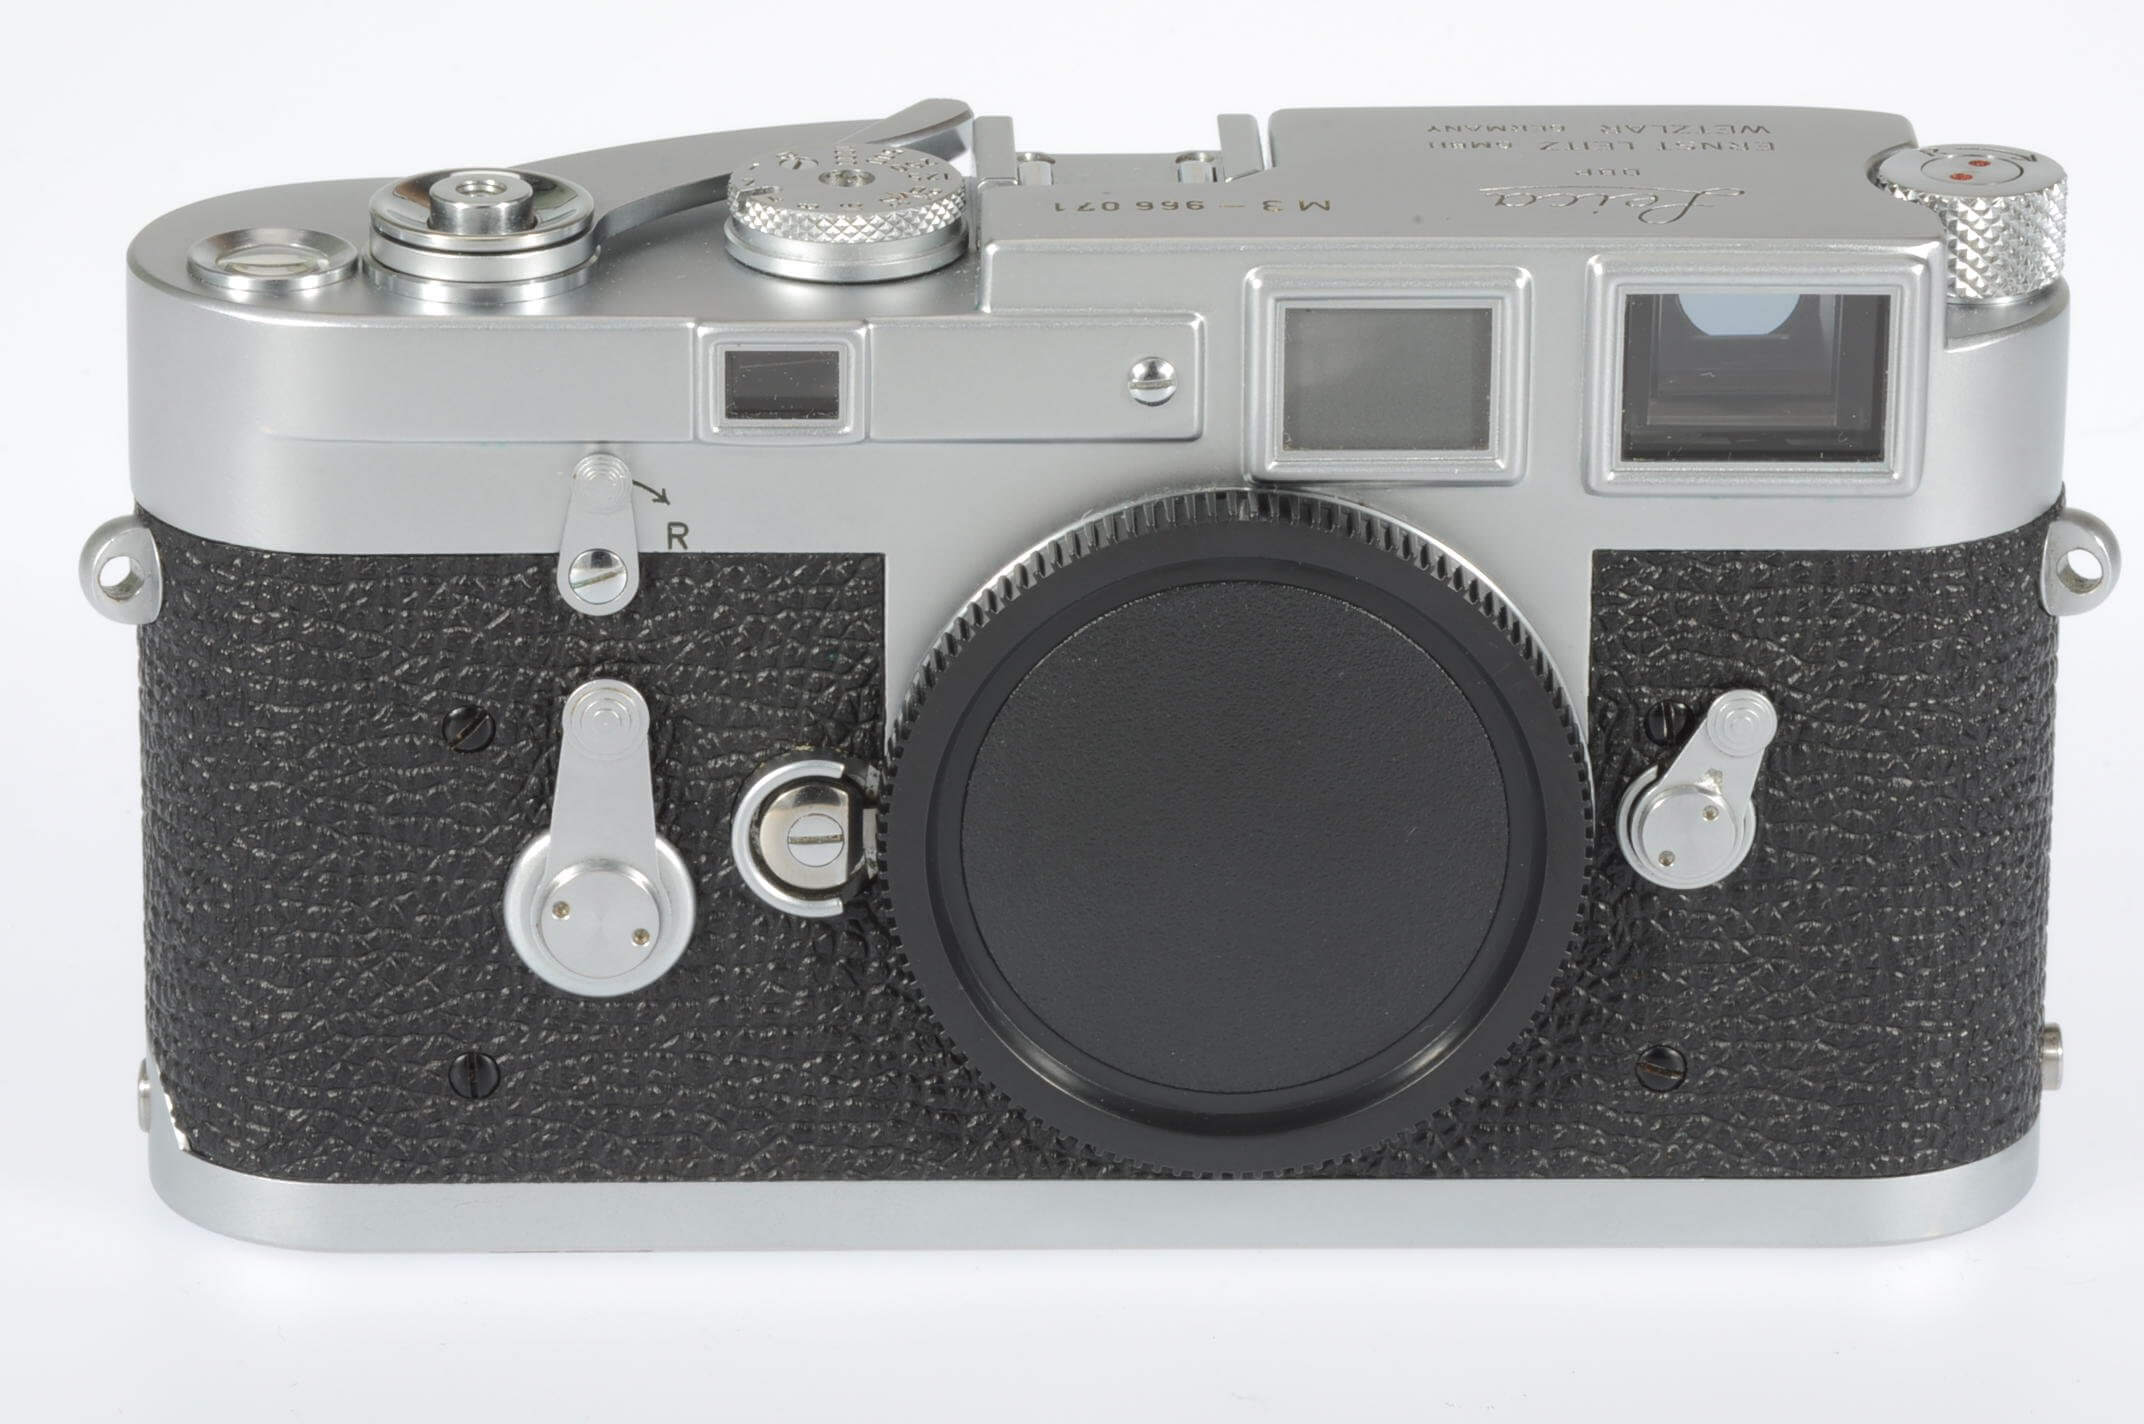 Leica M3 body, single wind, serviced, almost mint!